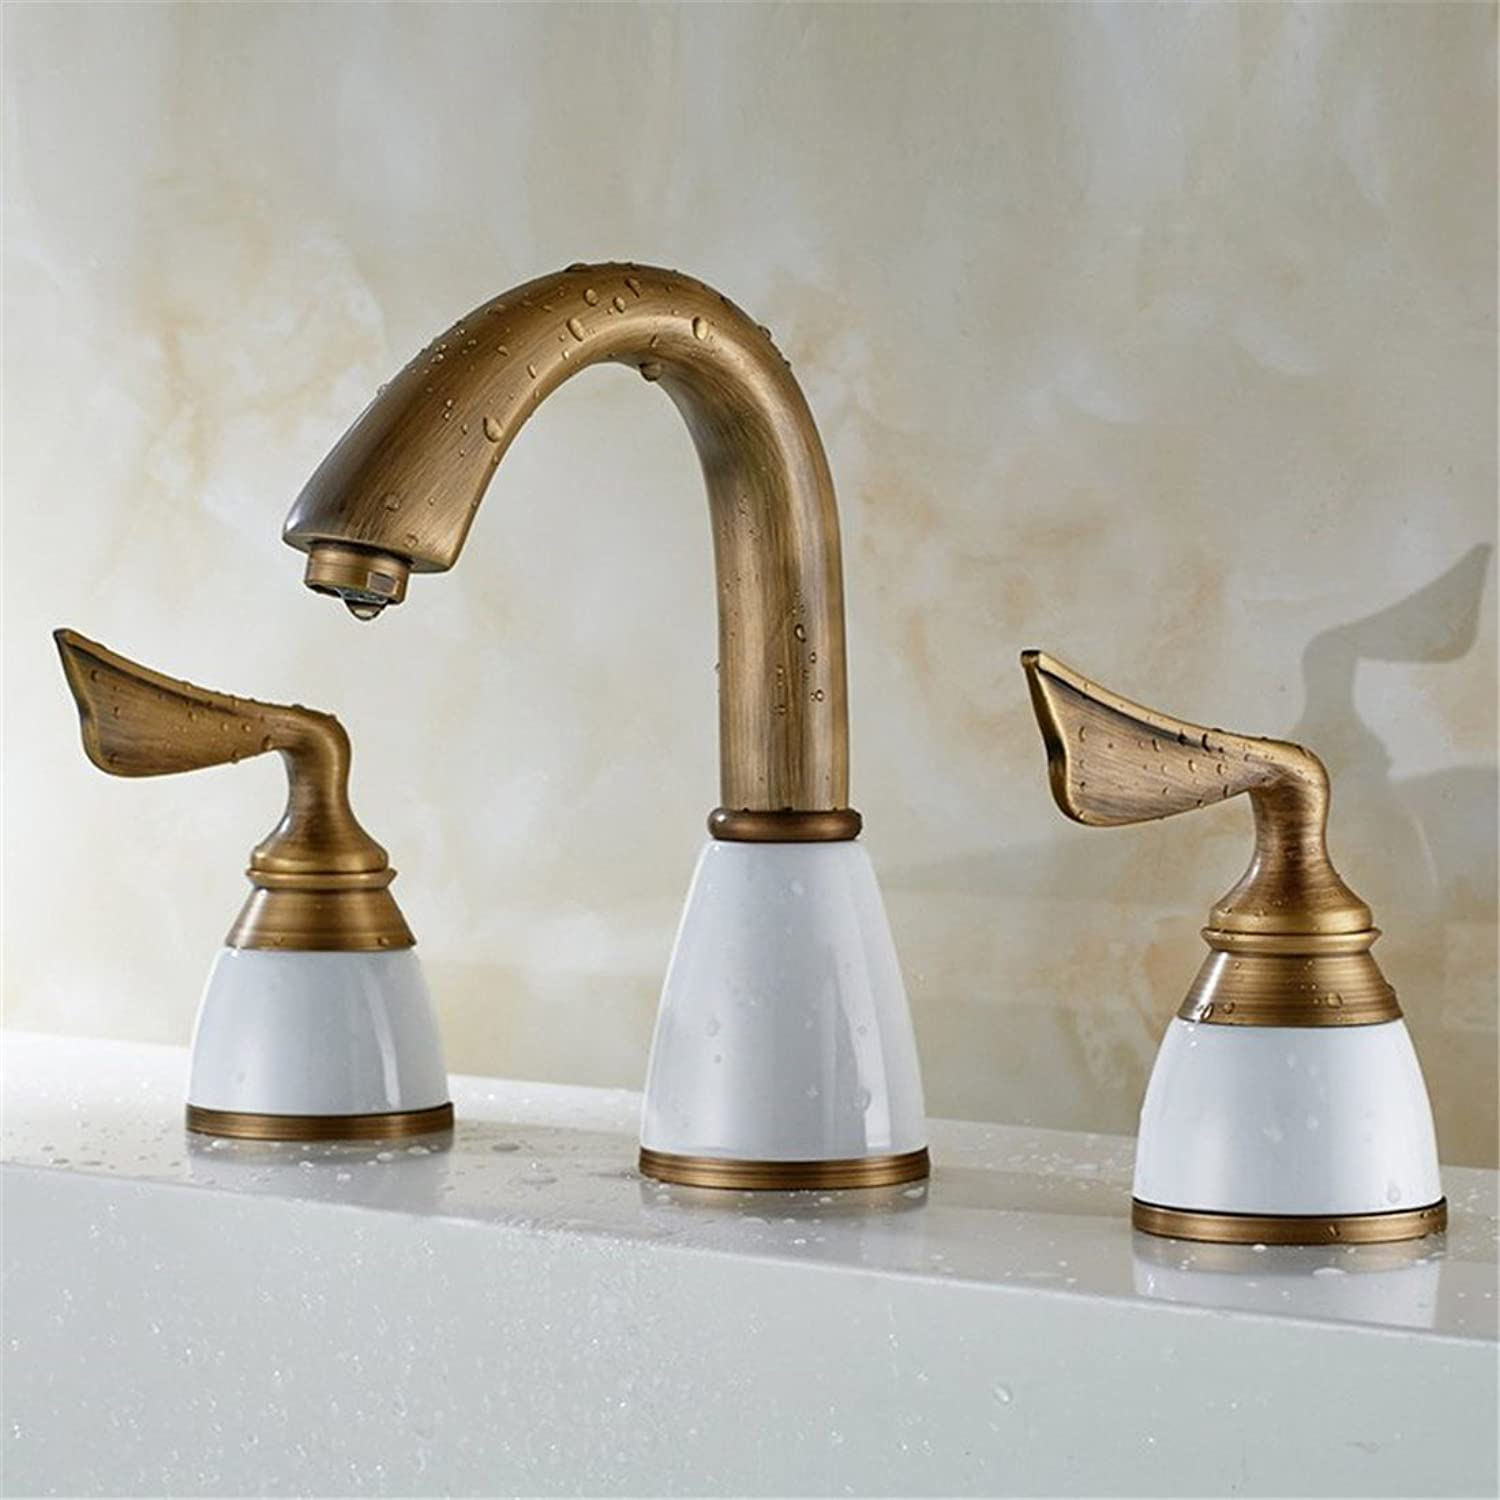 Hlluya Professional Sink Mixer Tap Kitchen Faucet Antique copper basin-wide three-cooled heat sink faucet sink basin mixer, three holes in the copper antique Faucet